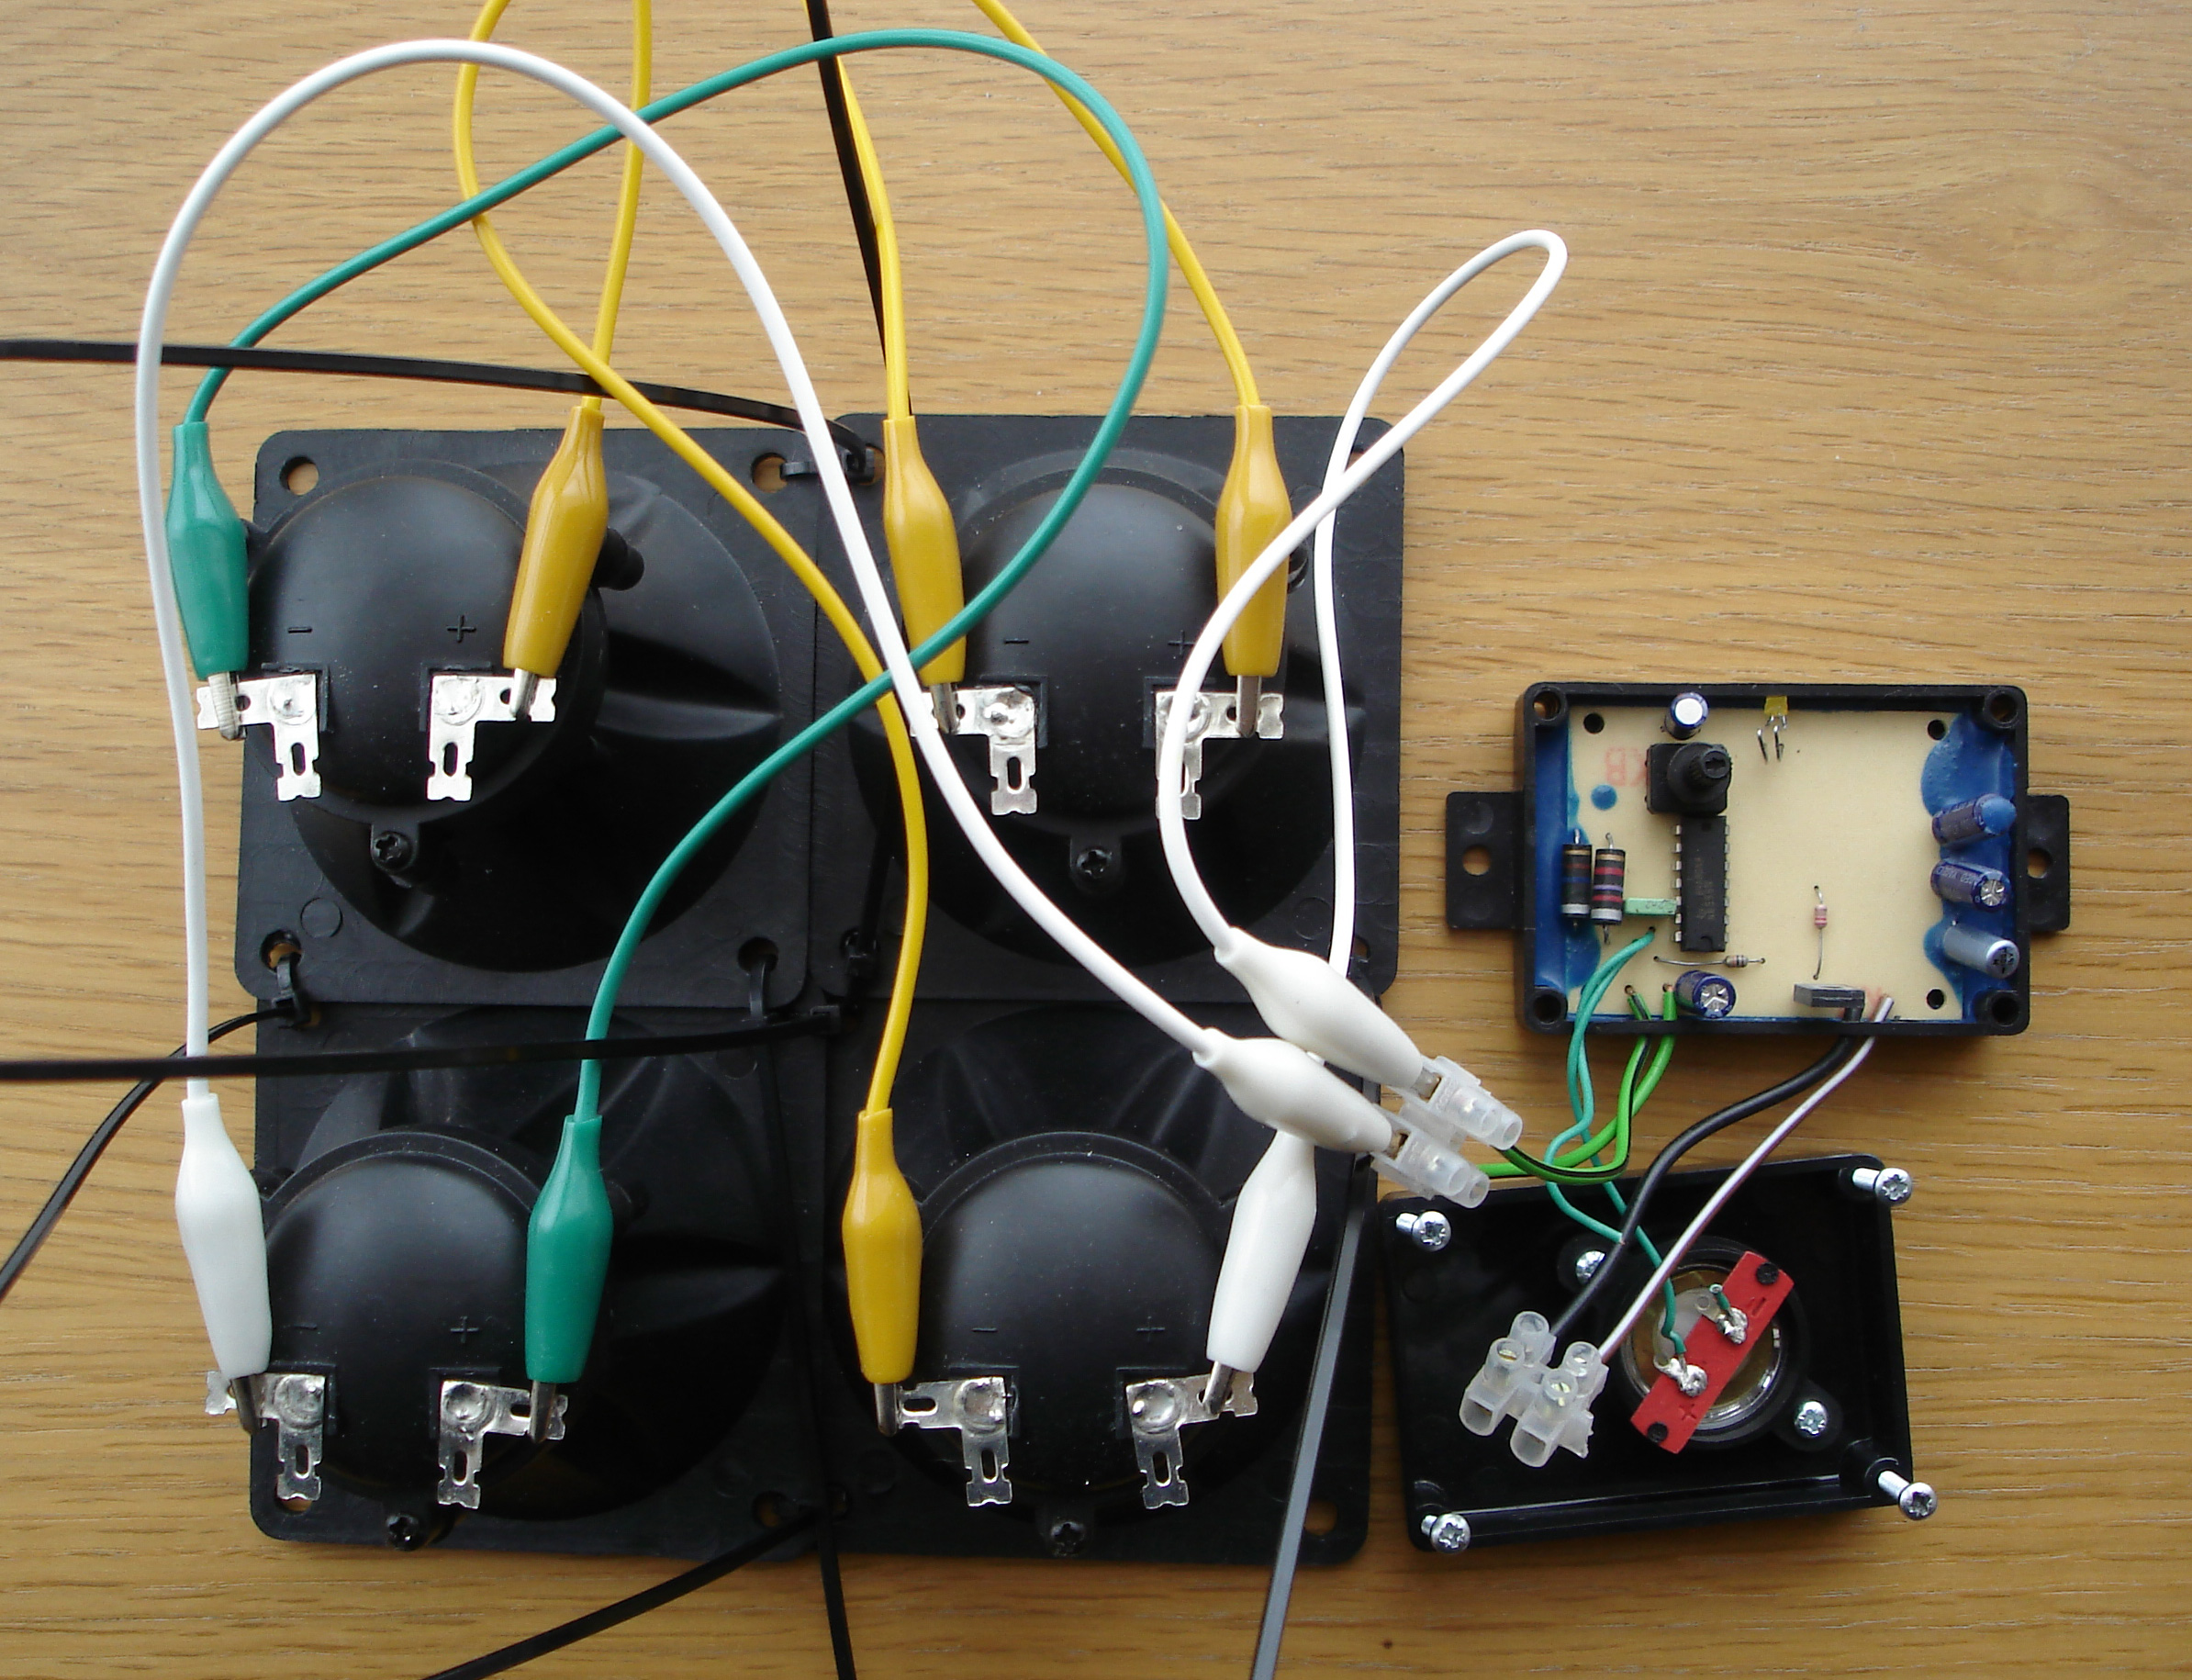 Electronic Dog Whistle - HAM Radio/Hardware Hacking